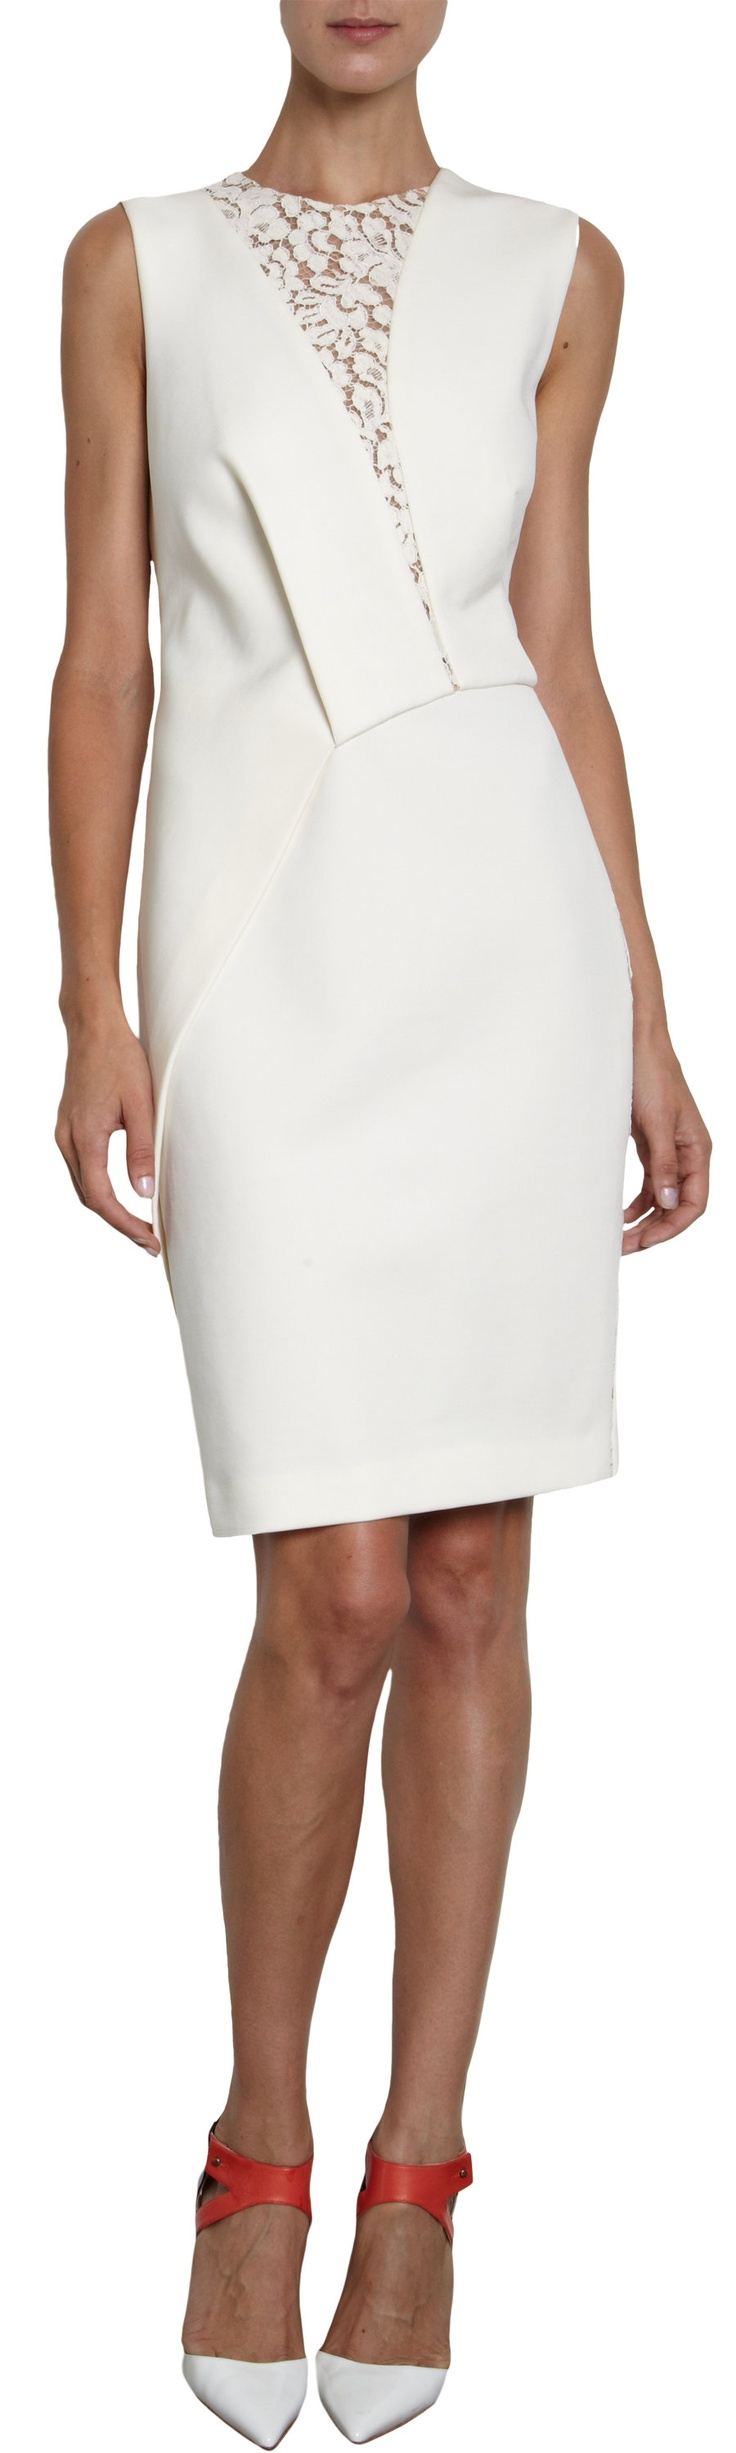 J. Mendel Lace Inset Dress at Barneys.com